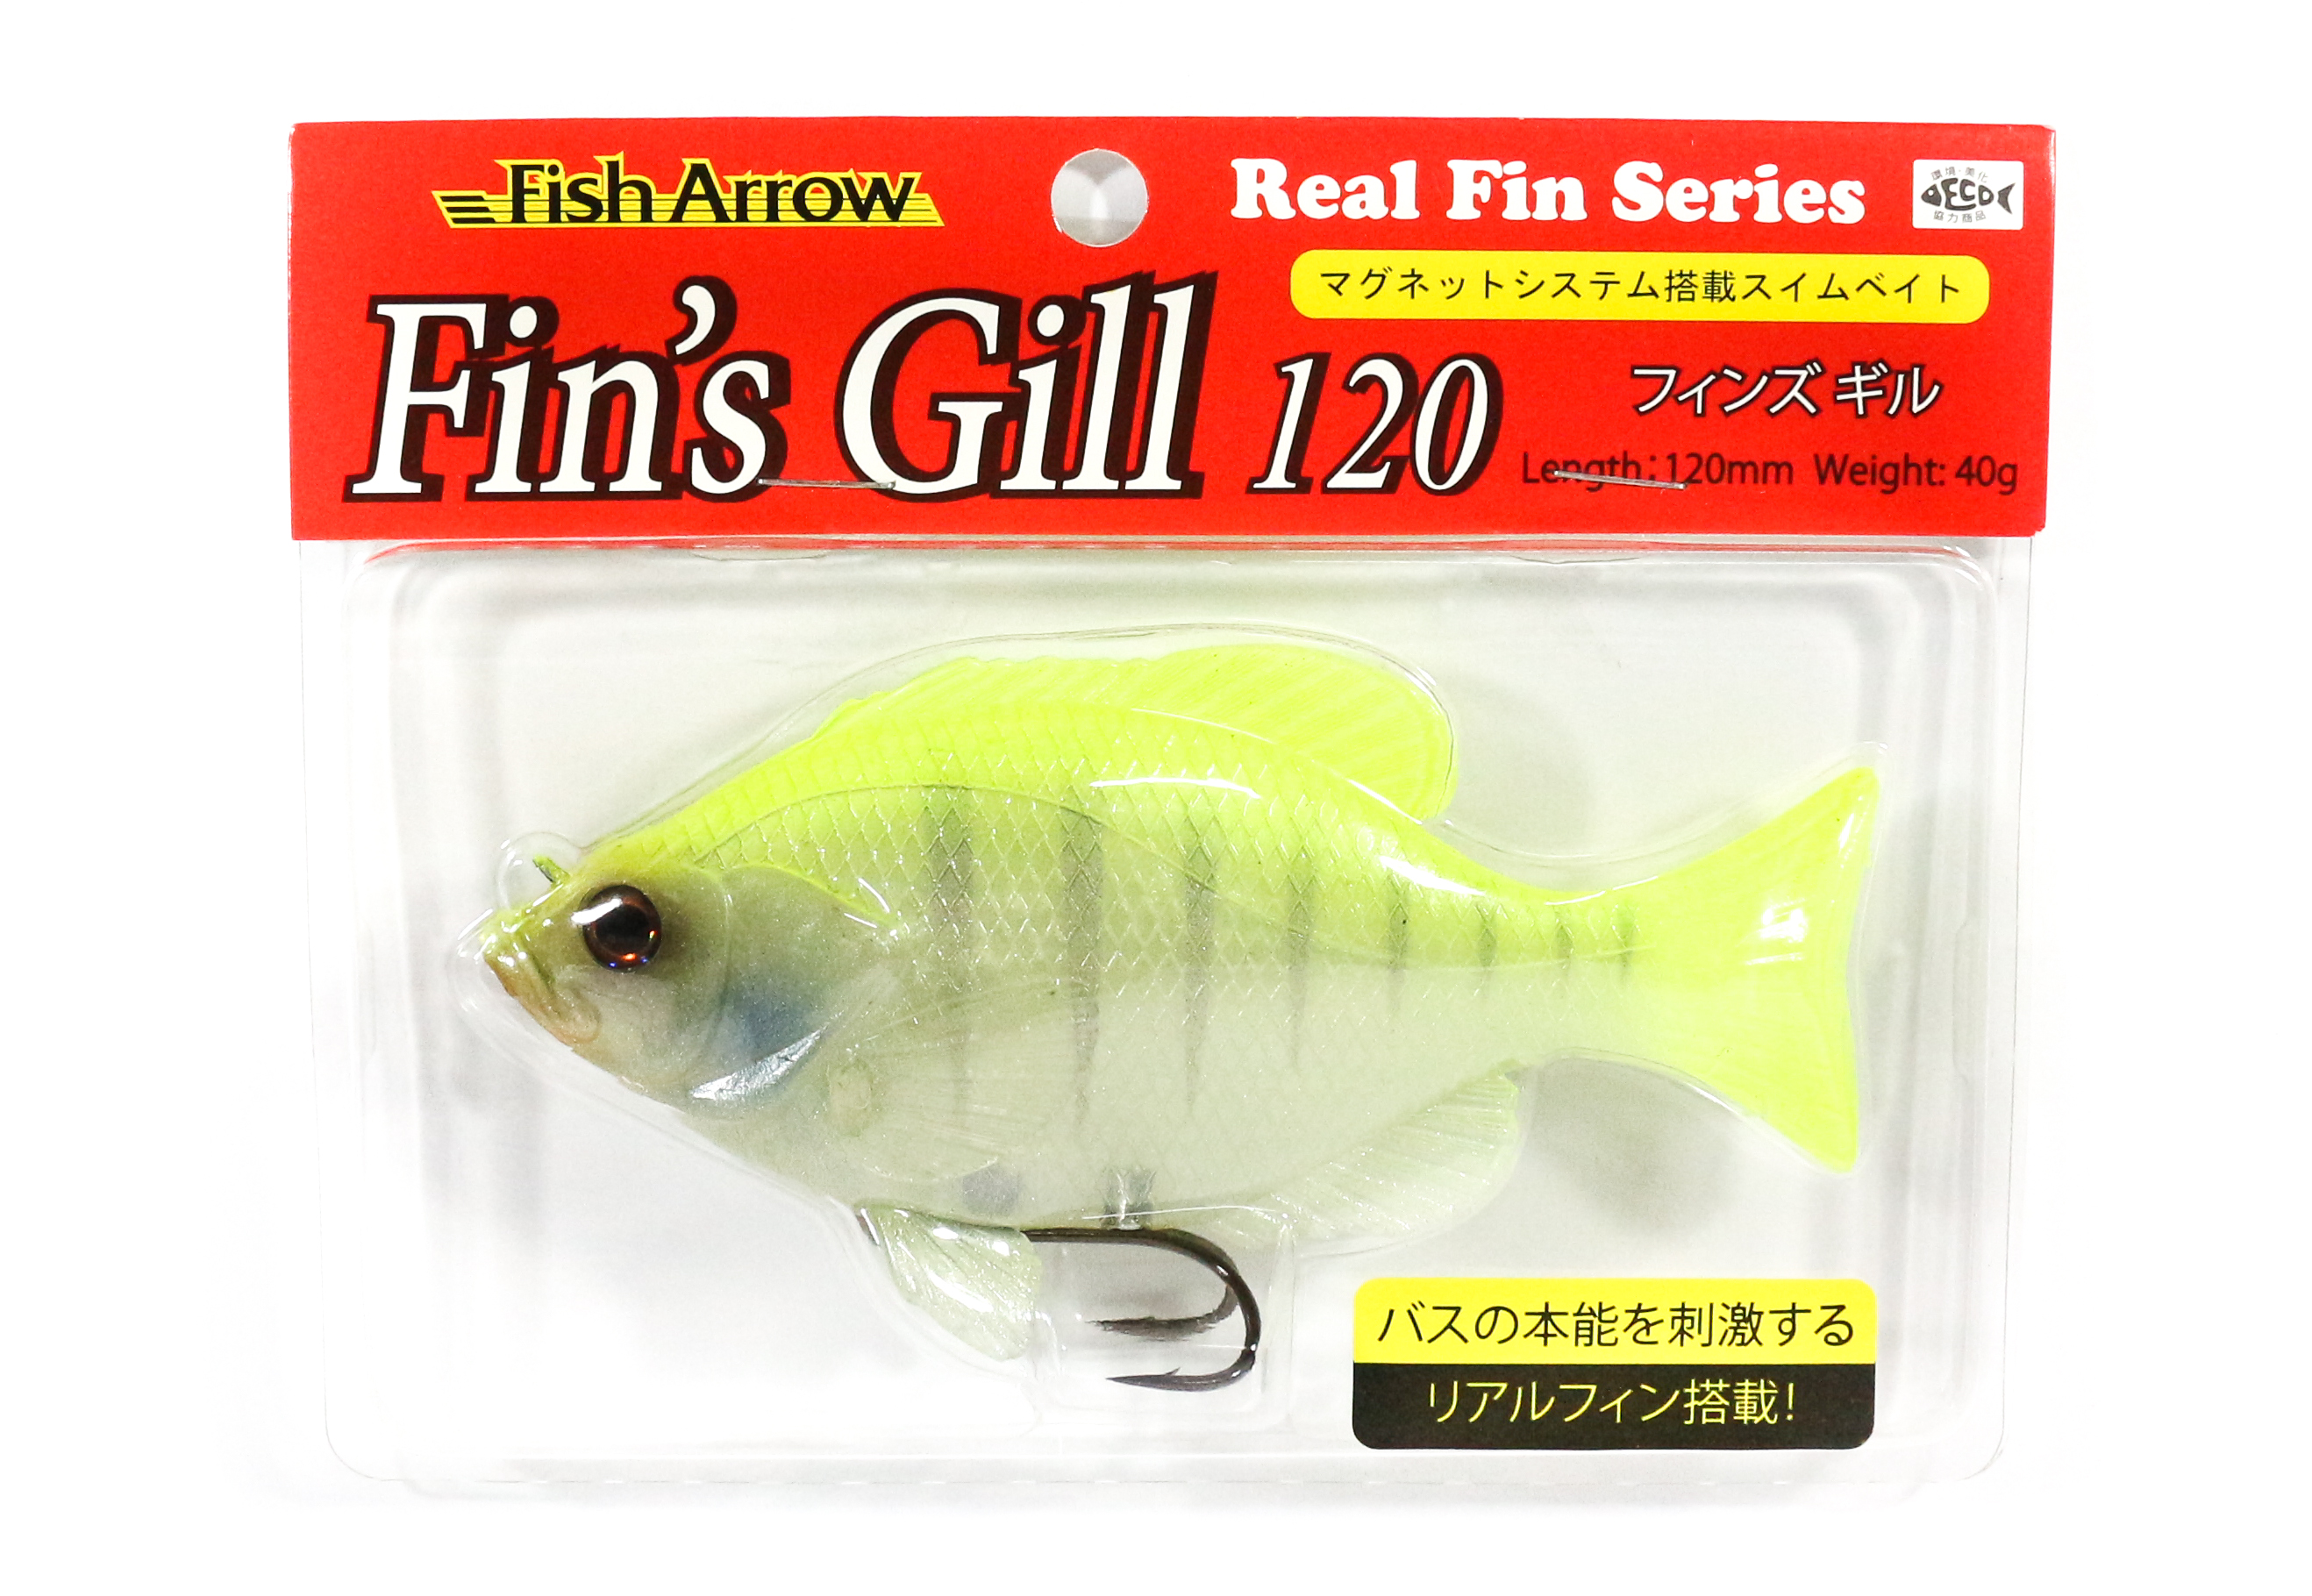 Fish Arrow Soft Lure Fin's Gill 120 40 gram 120 mm Sinking Lure #03 (8504)